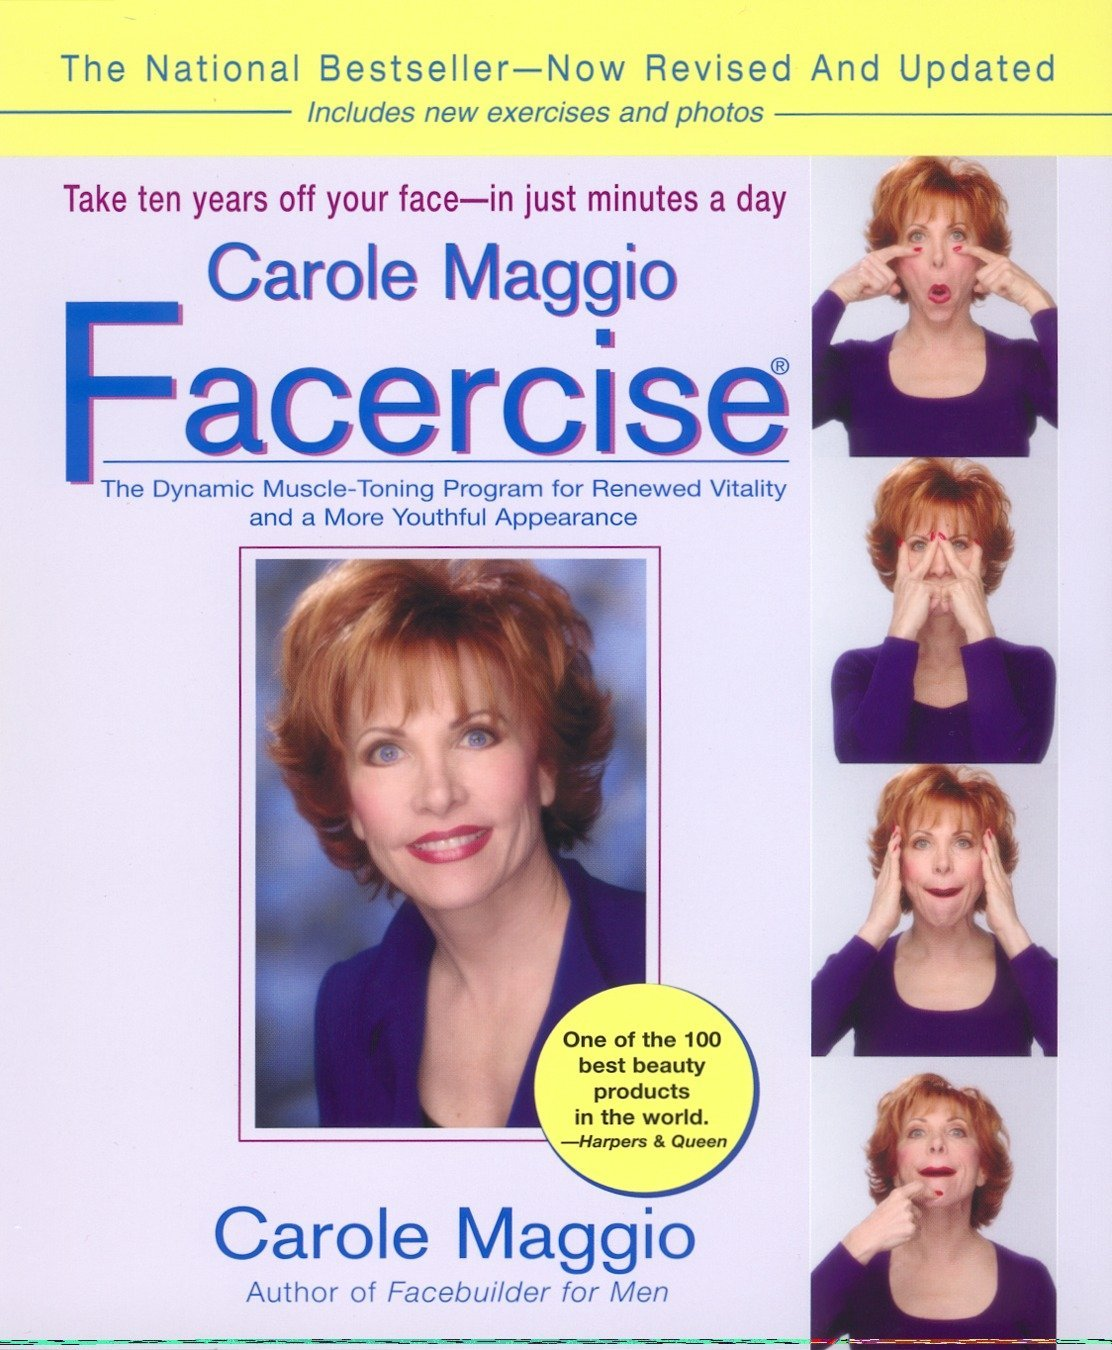 Carole Maggio Facercise (R): The Dynamic Muscle-Toning Program for Renewed Vitality and a More Youthful Appearance…